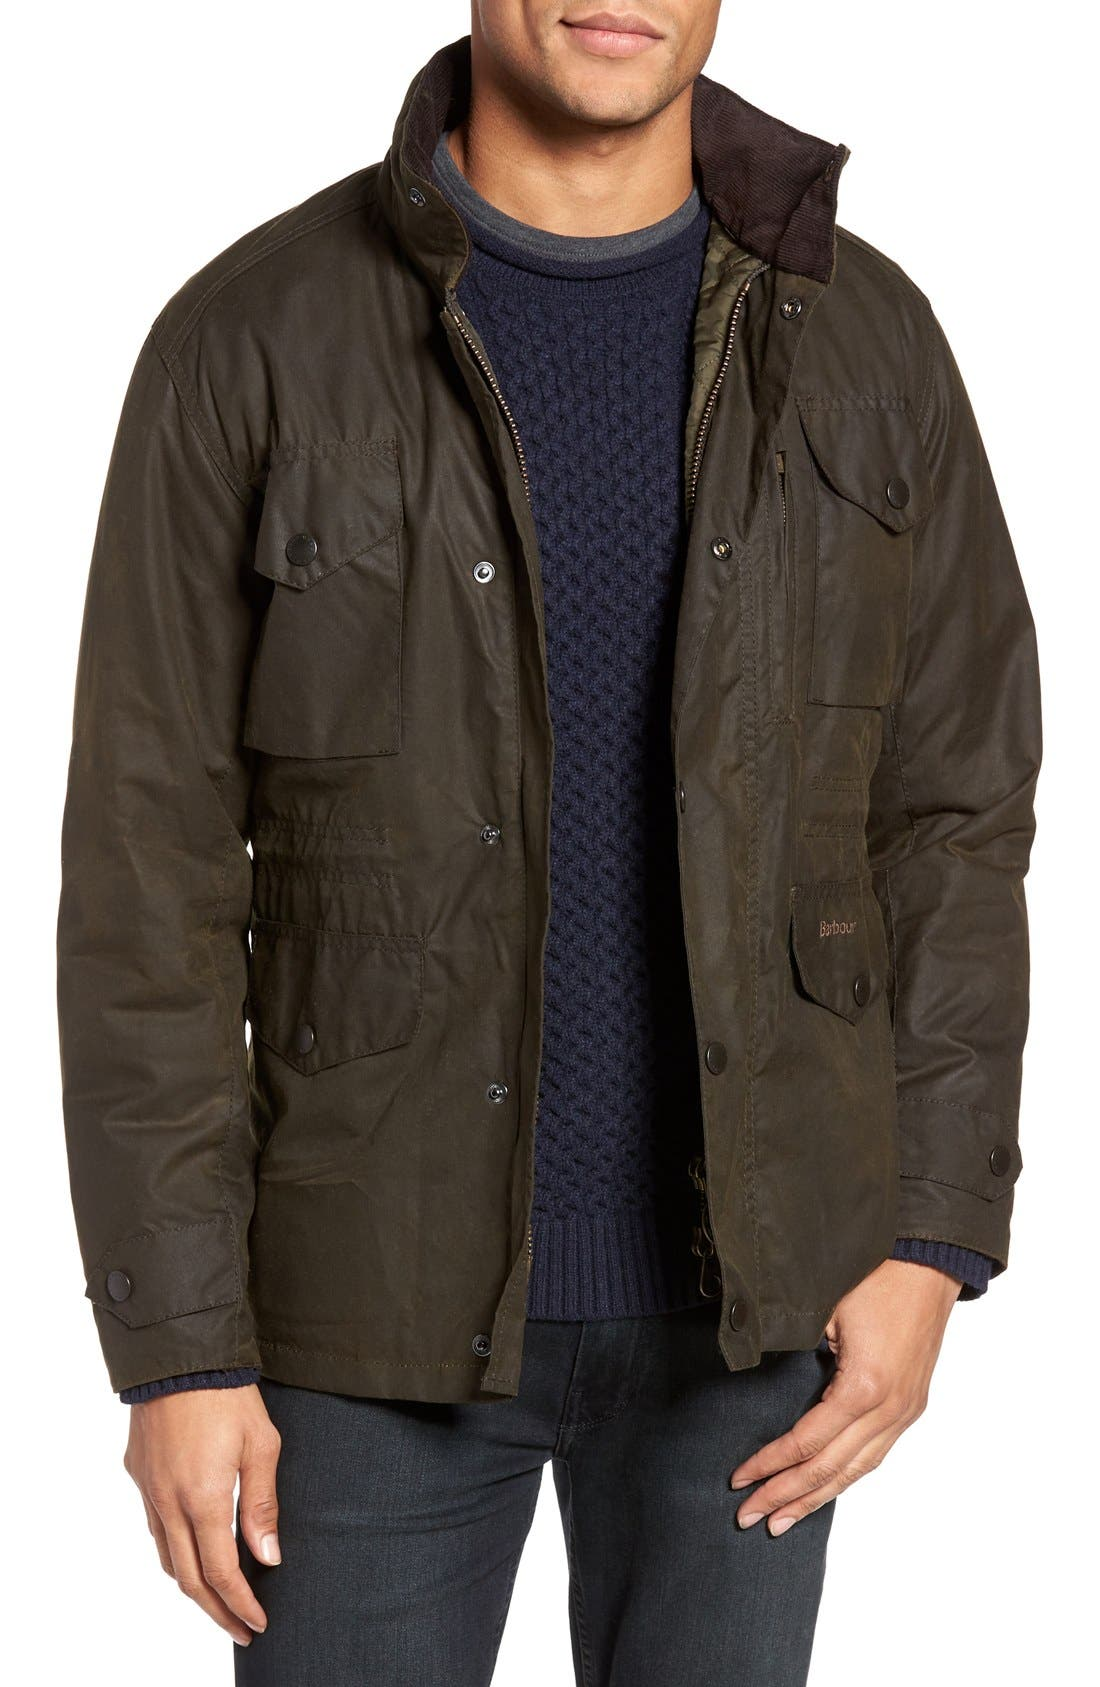 Main Image - Barbour 'Sapper' Regular Fit Waterproof Waxed Cotton Jacket